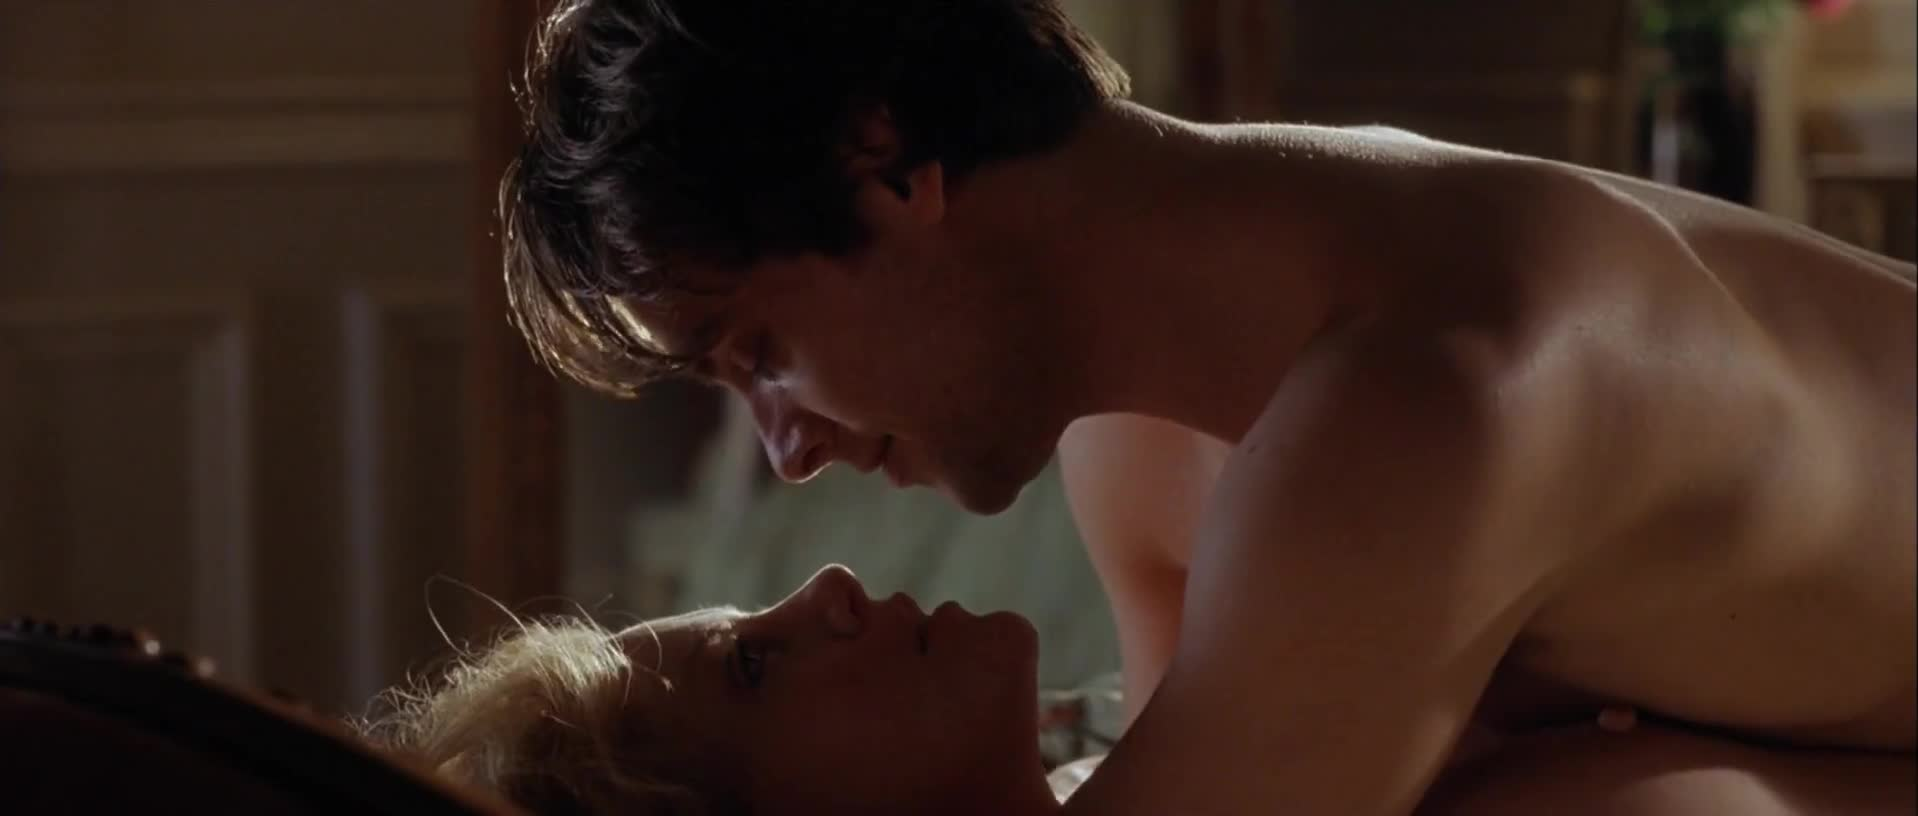 Charlize Theron sexy scene from Head in the Clouds